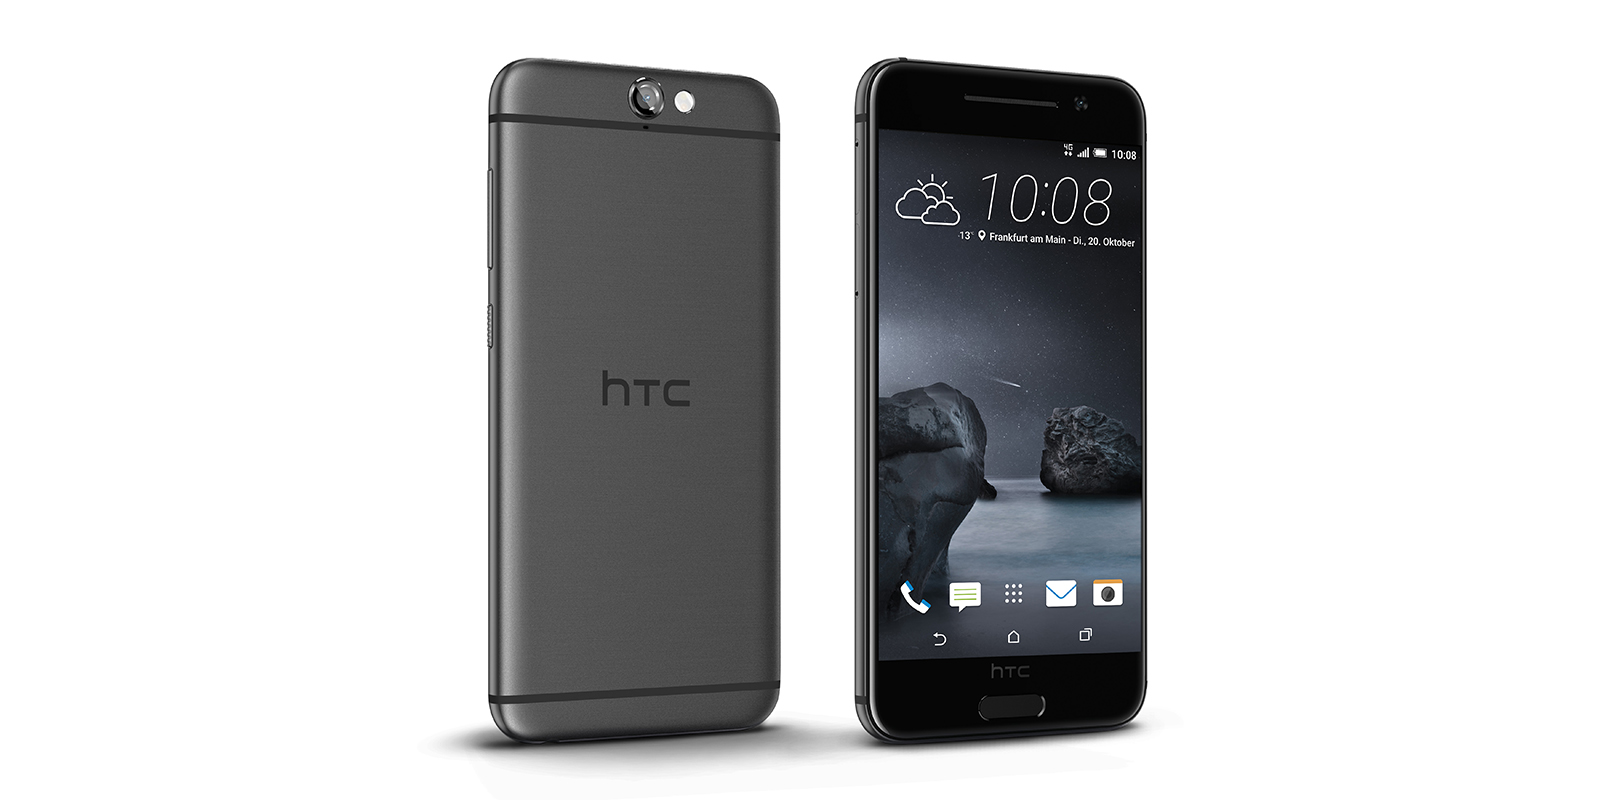 htc one a9 officially announced djs mobiles technology. Black Bedroom Furniture Sets. Home Design Ideas